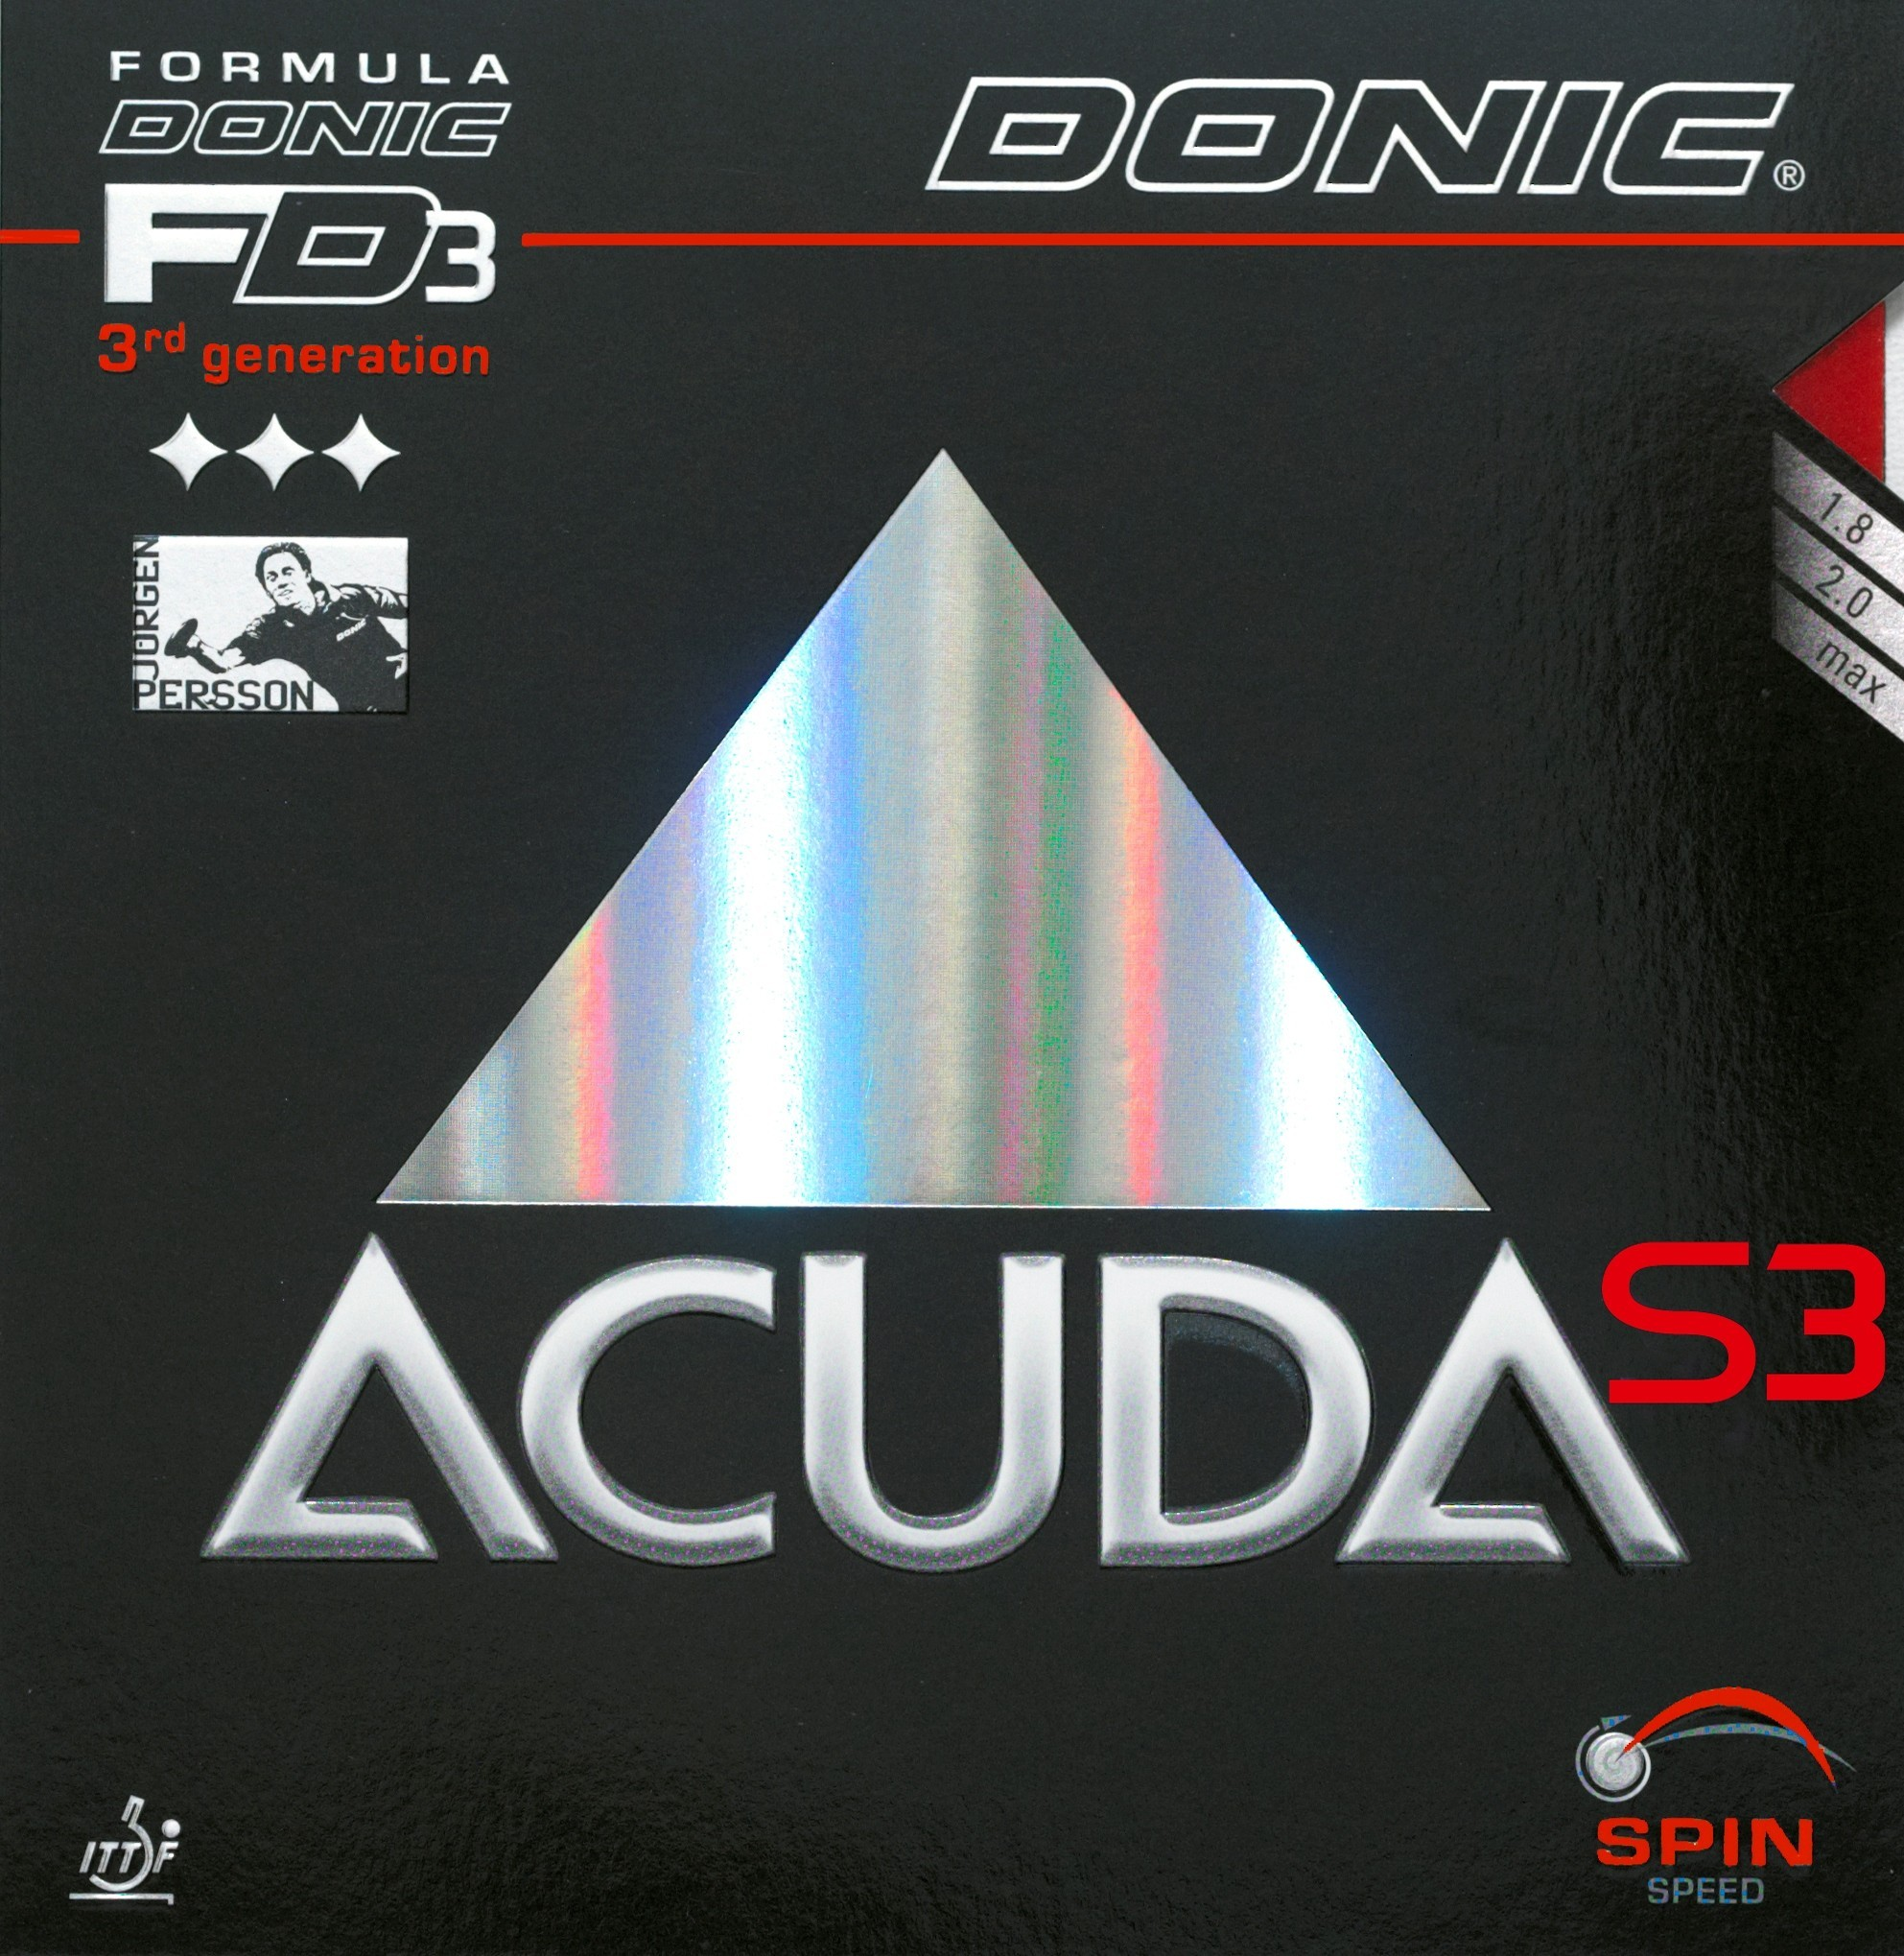 Donic Accuda S3 Table Tennis Rubber.